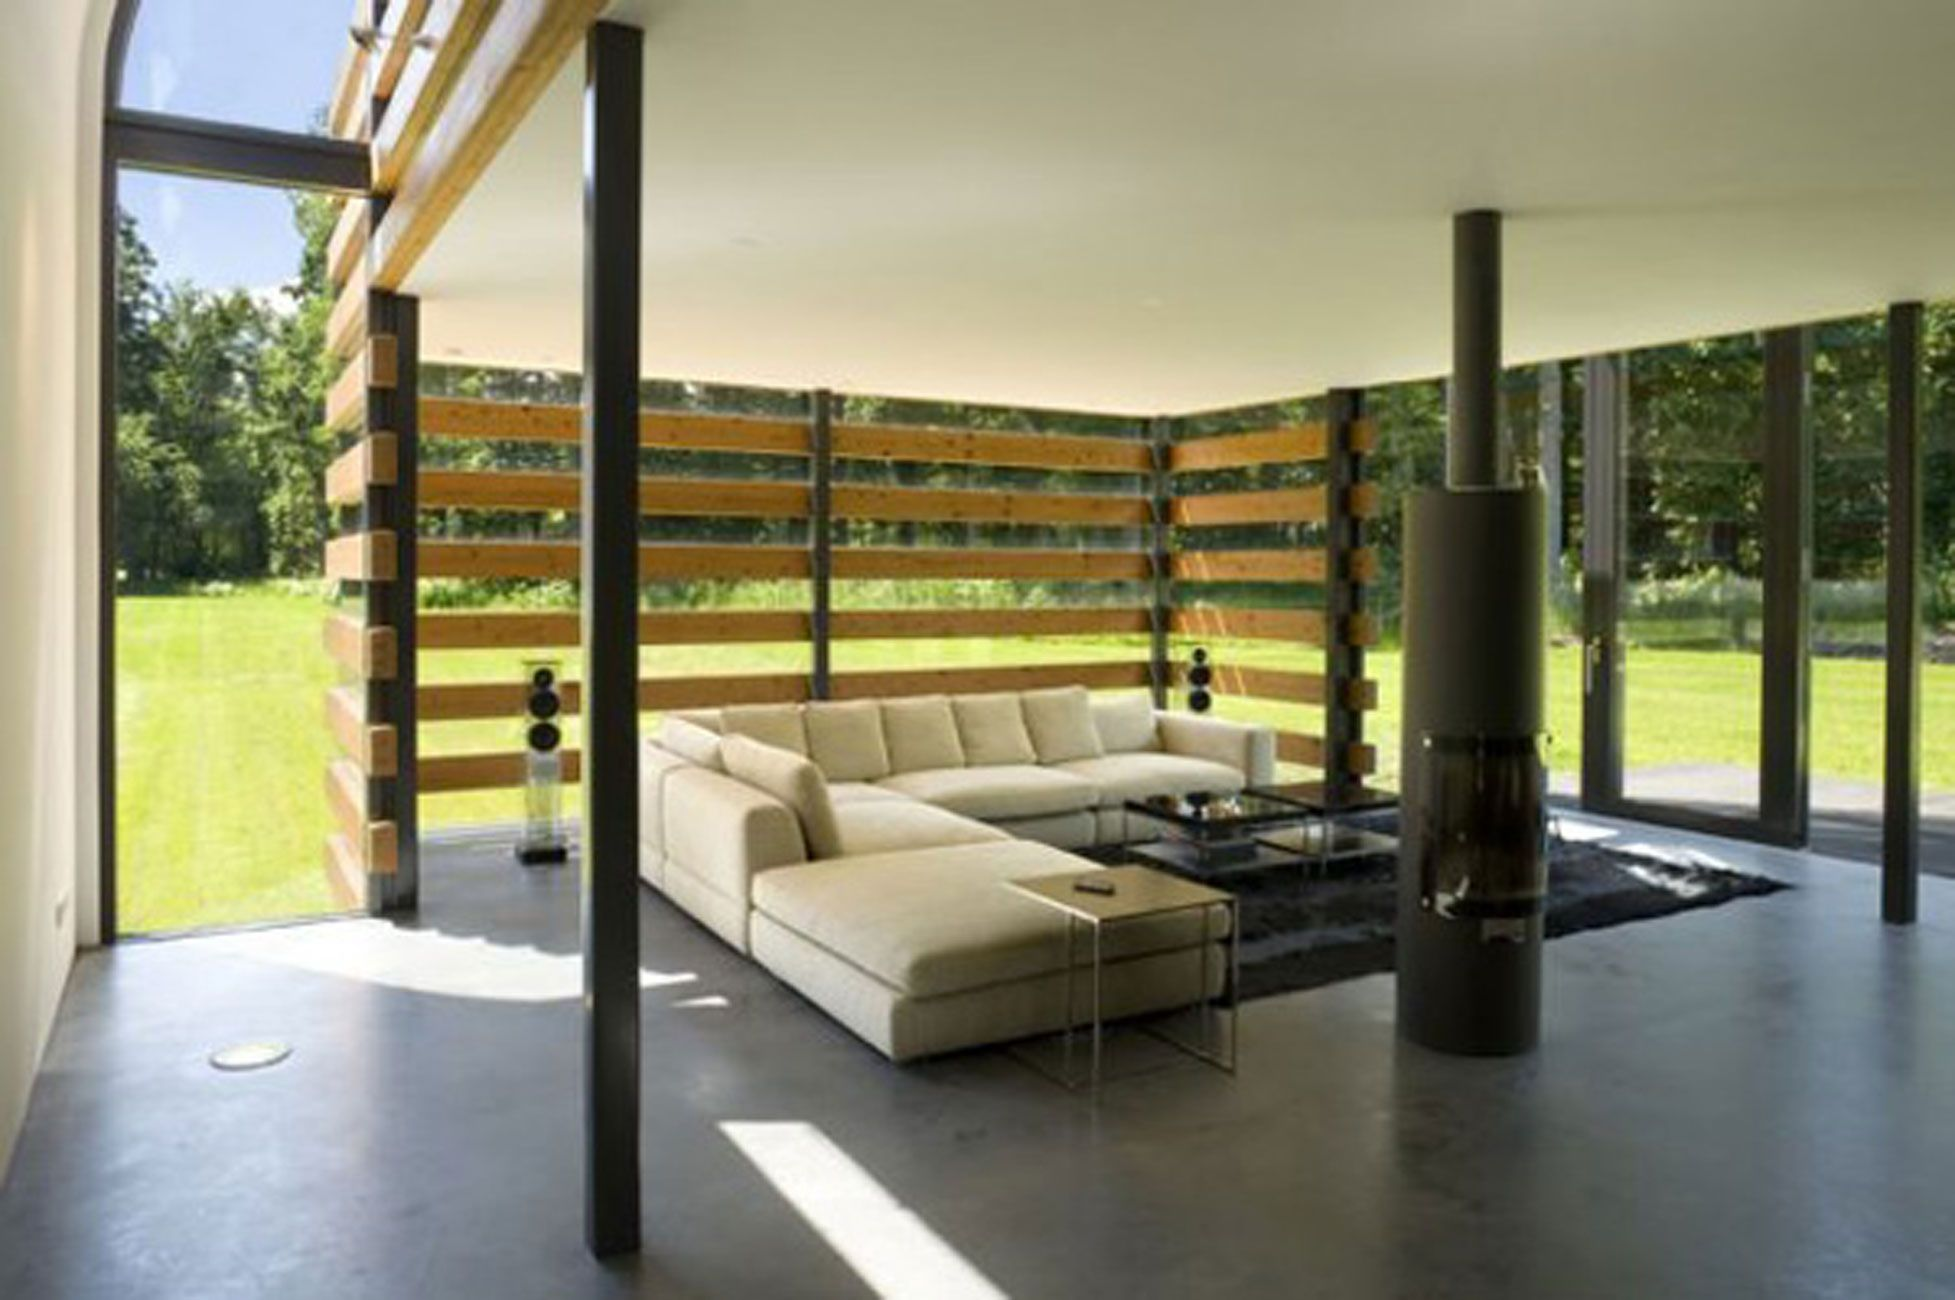 love wood on sides for privacy and wind break..tal barn designs